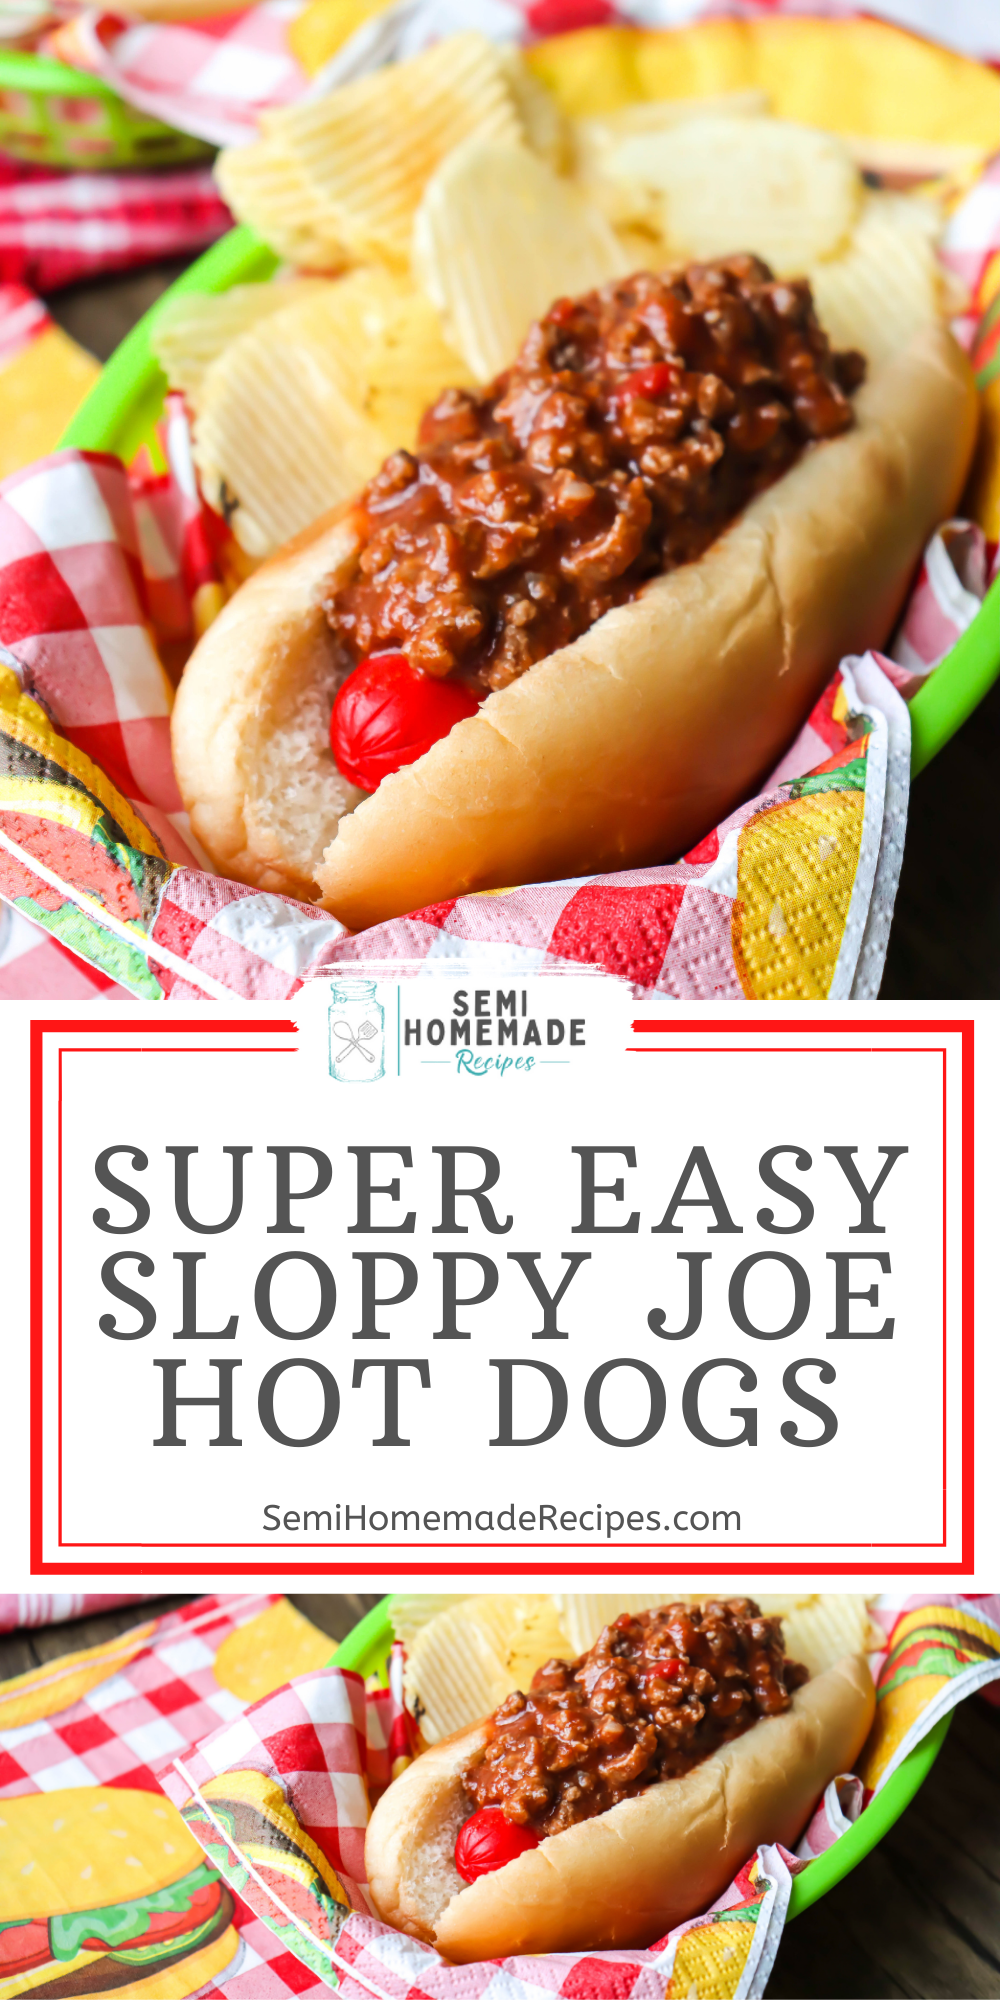 Combine Sloppy Joe Sandwiches and Hot Dogs and make these Sloppy Joe Hot Dogs for a super easy dinner this week!